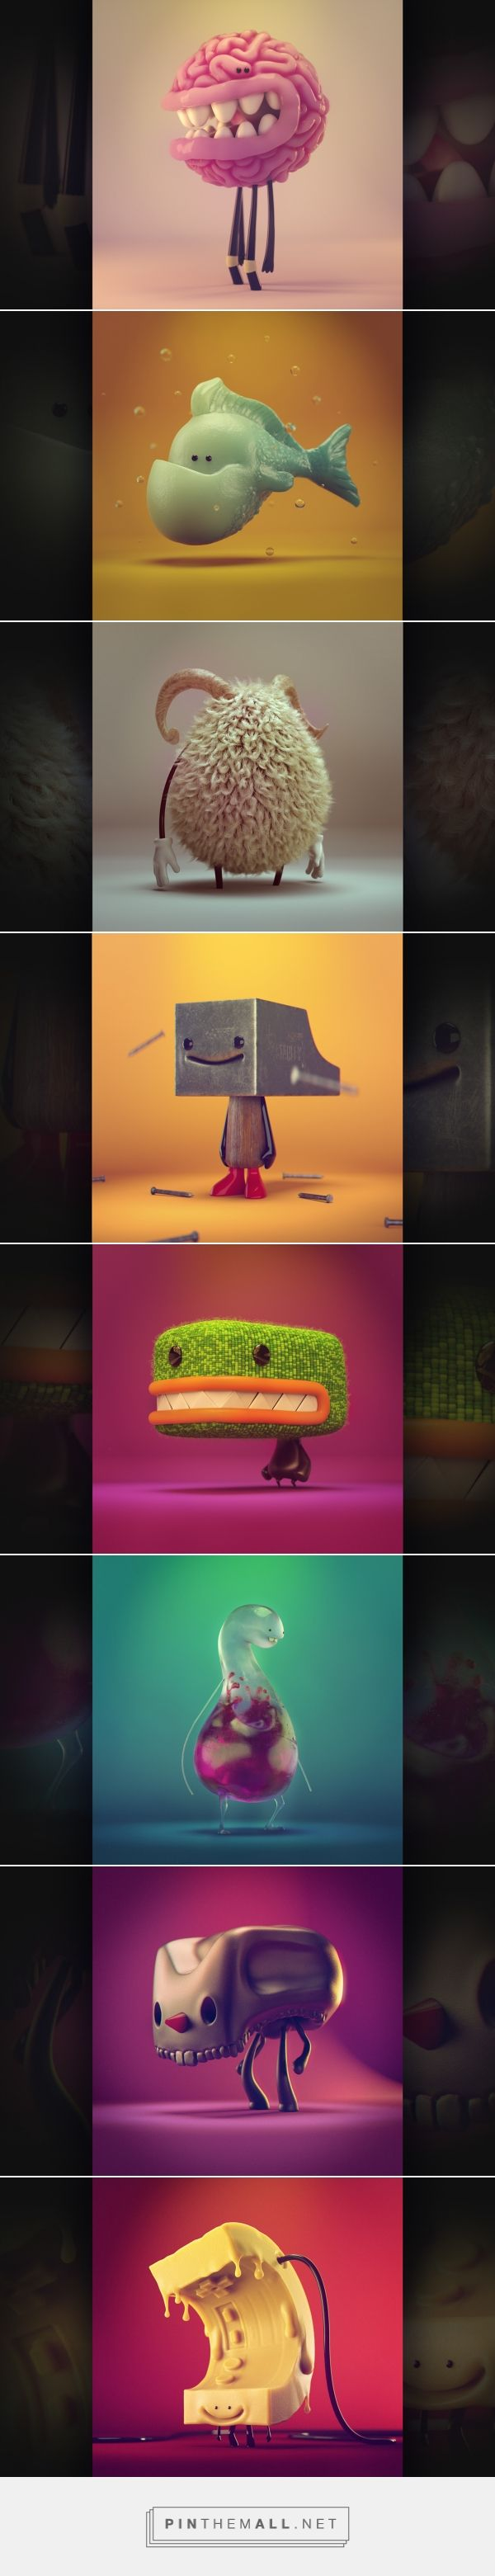 Amigos project on Behance - created via https://pinthemall.net